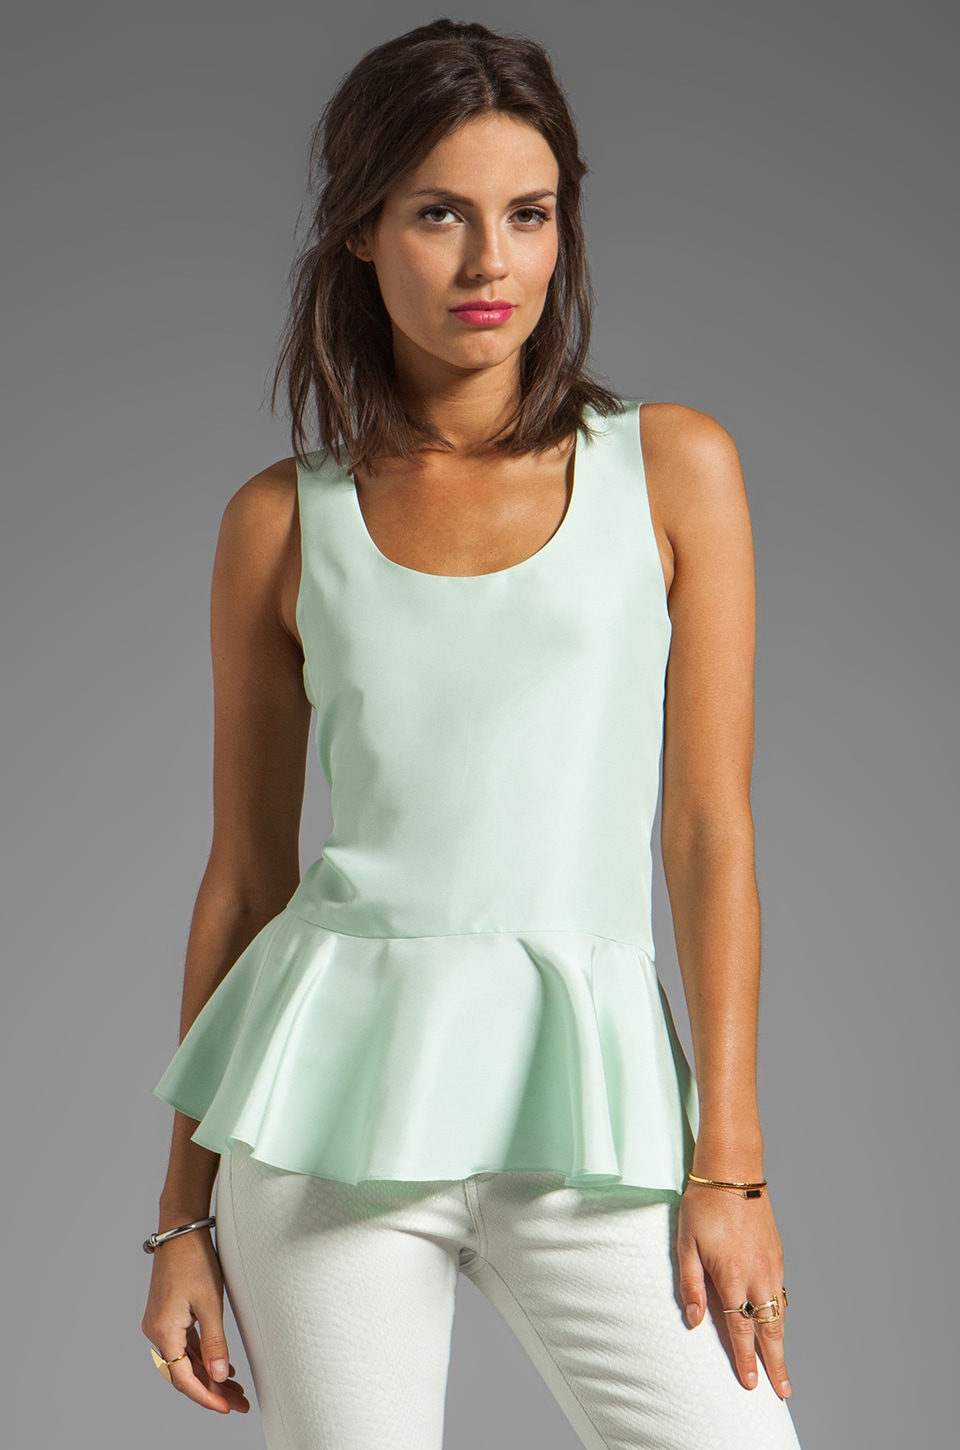 Cynthia Rowley Frosted Silk Dupioni Ruffle Top in Mint